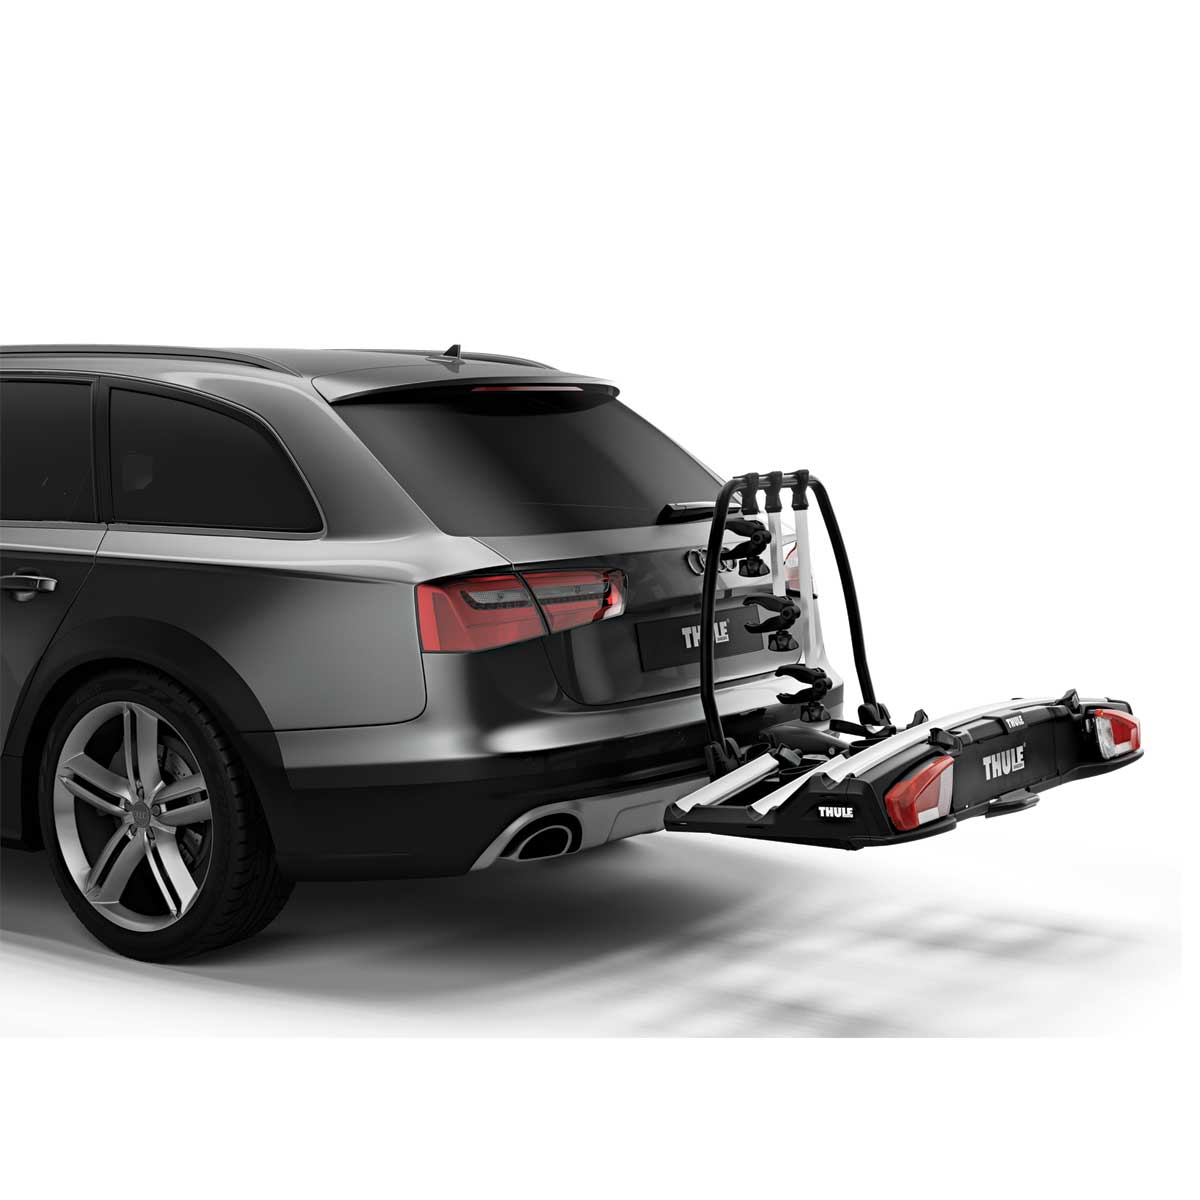 thule velospace xt 3 cycle carrier. Black Bedroom Furniture Sets. Home Design Ideas